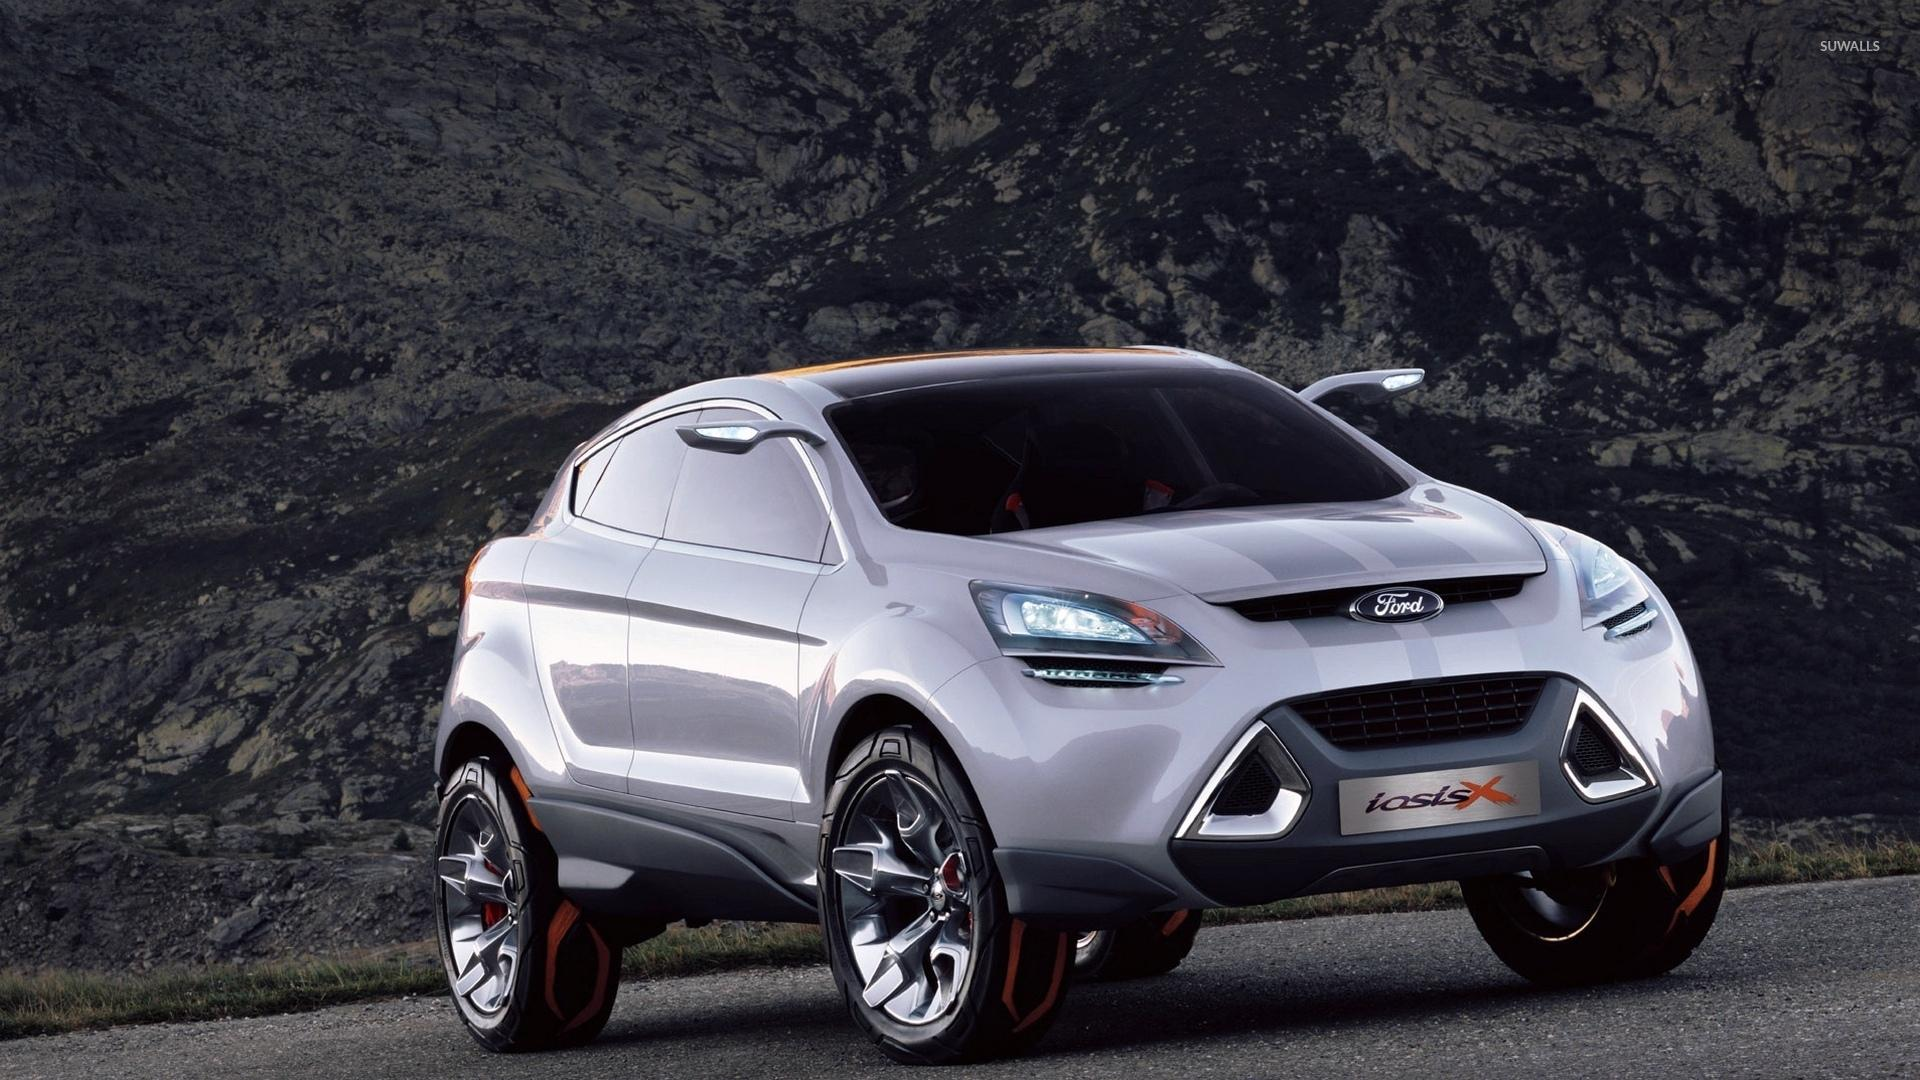 Ford Kuga wallpaper - Car wallpapers - #4499